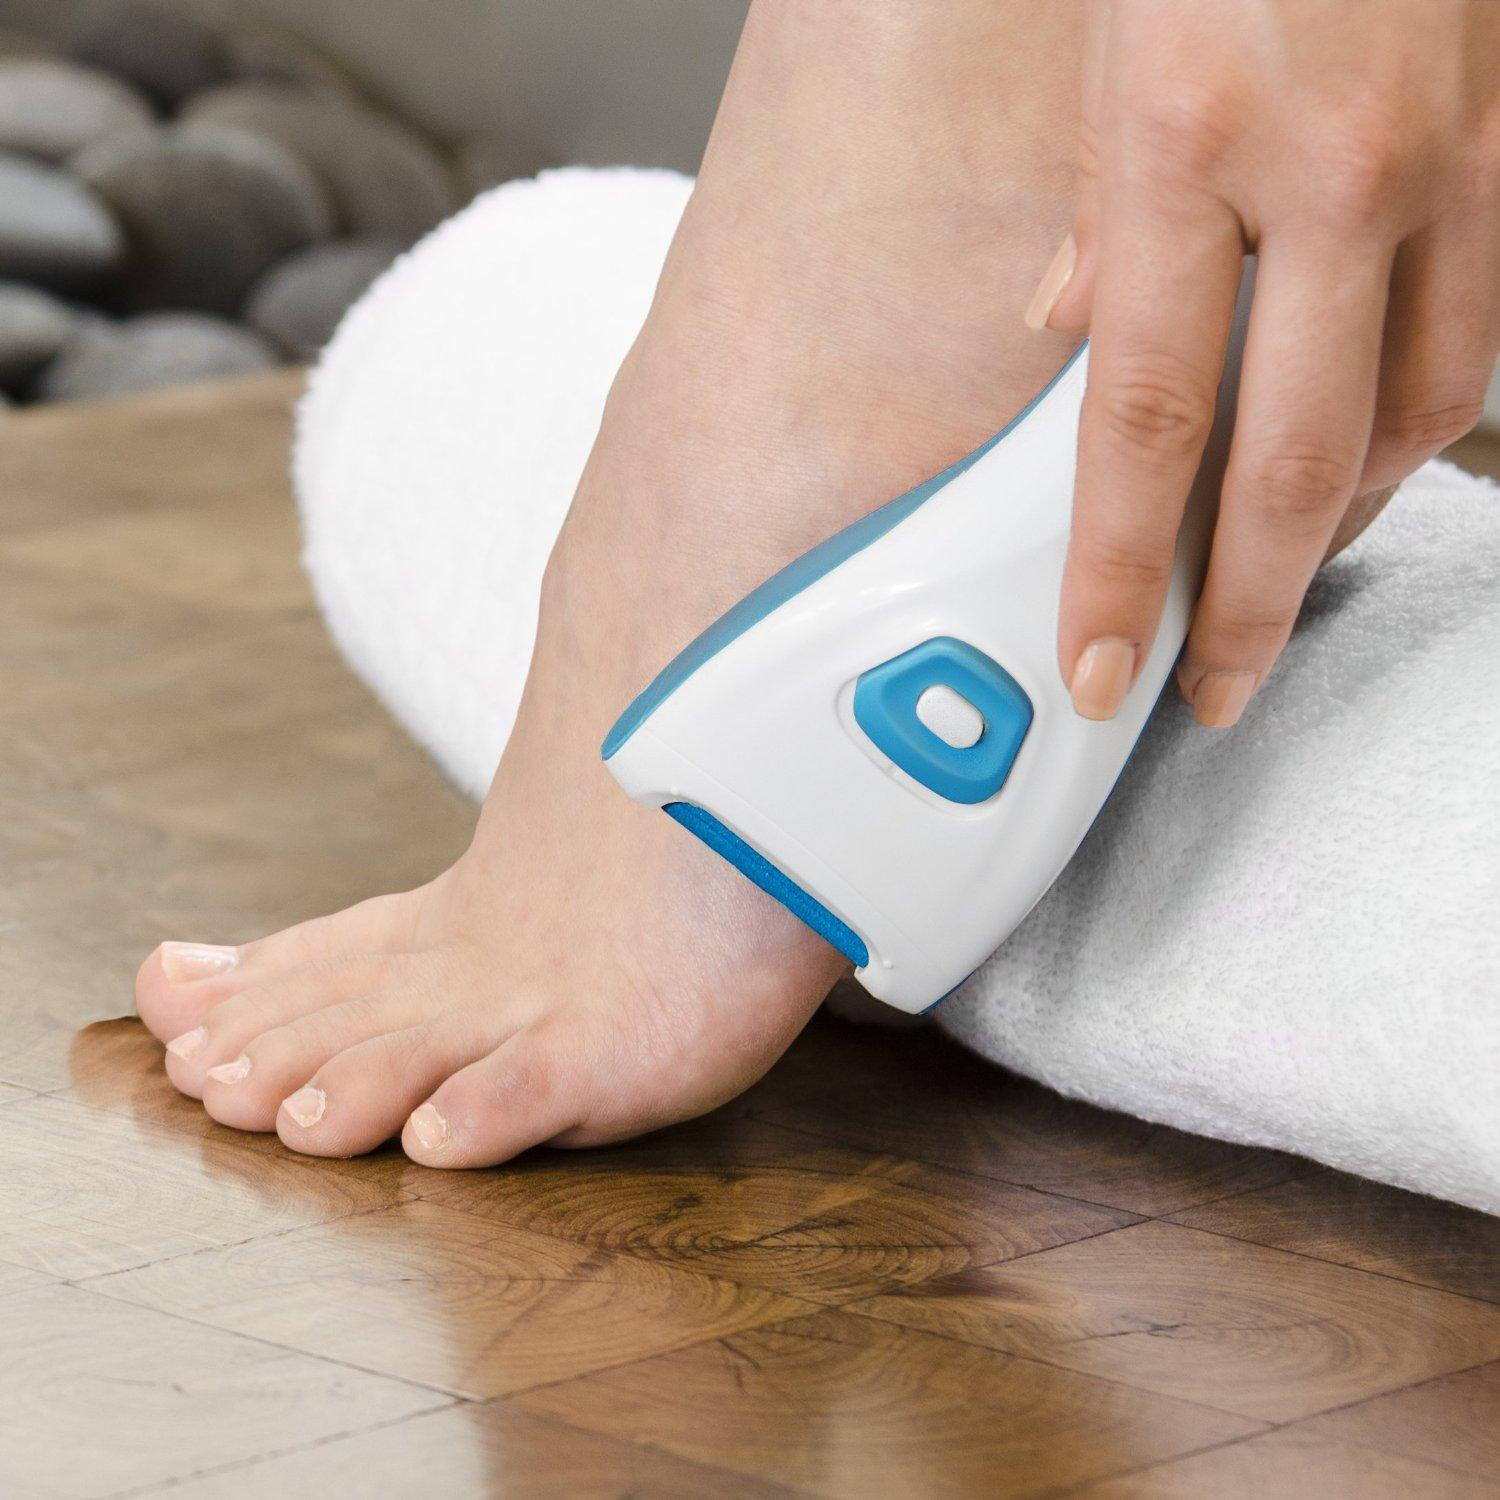 #1 Best seller! $12.99 PurePedi Electronic Callus Remover - Premium Cordless Sole Buffing System